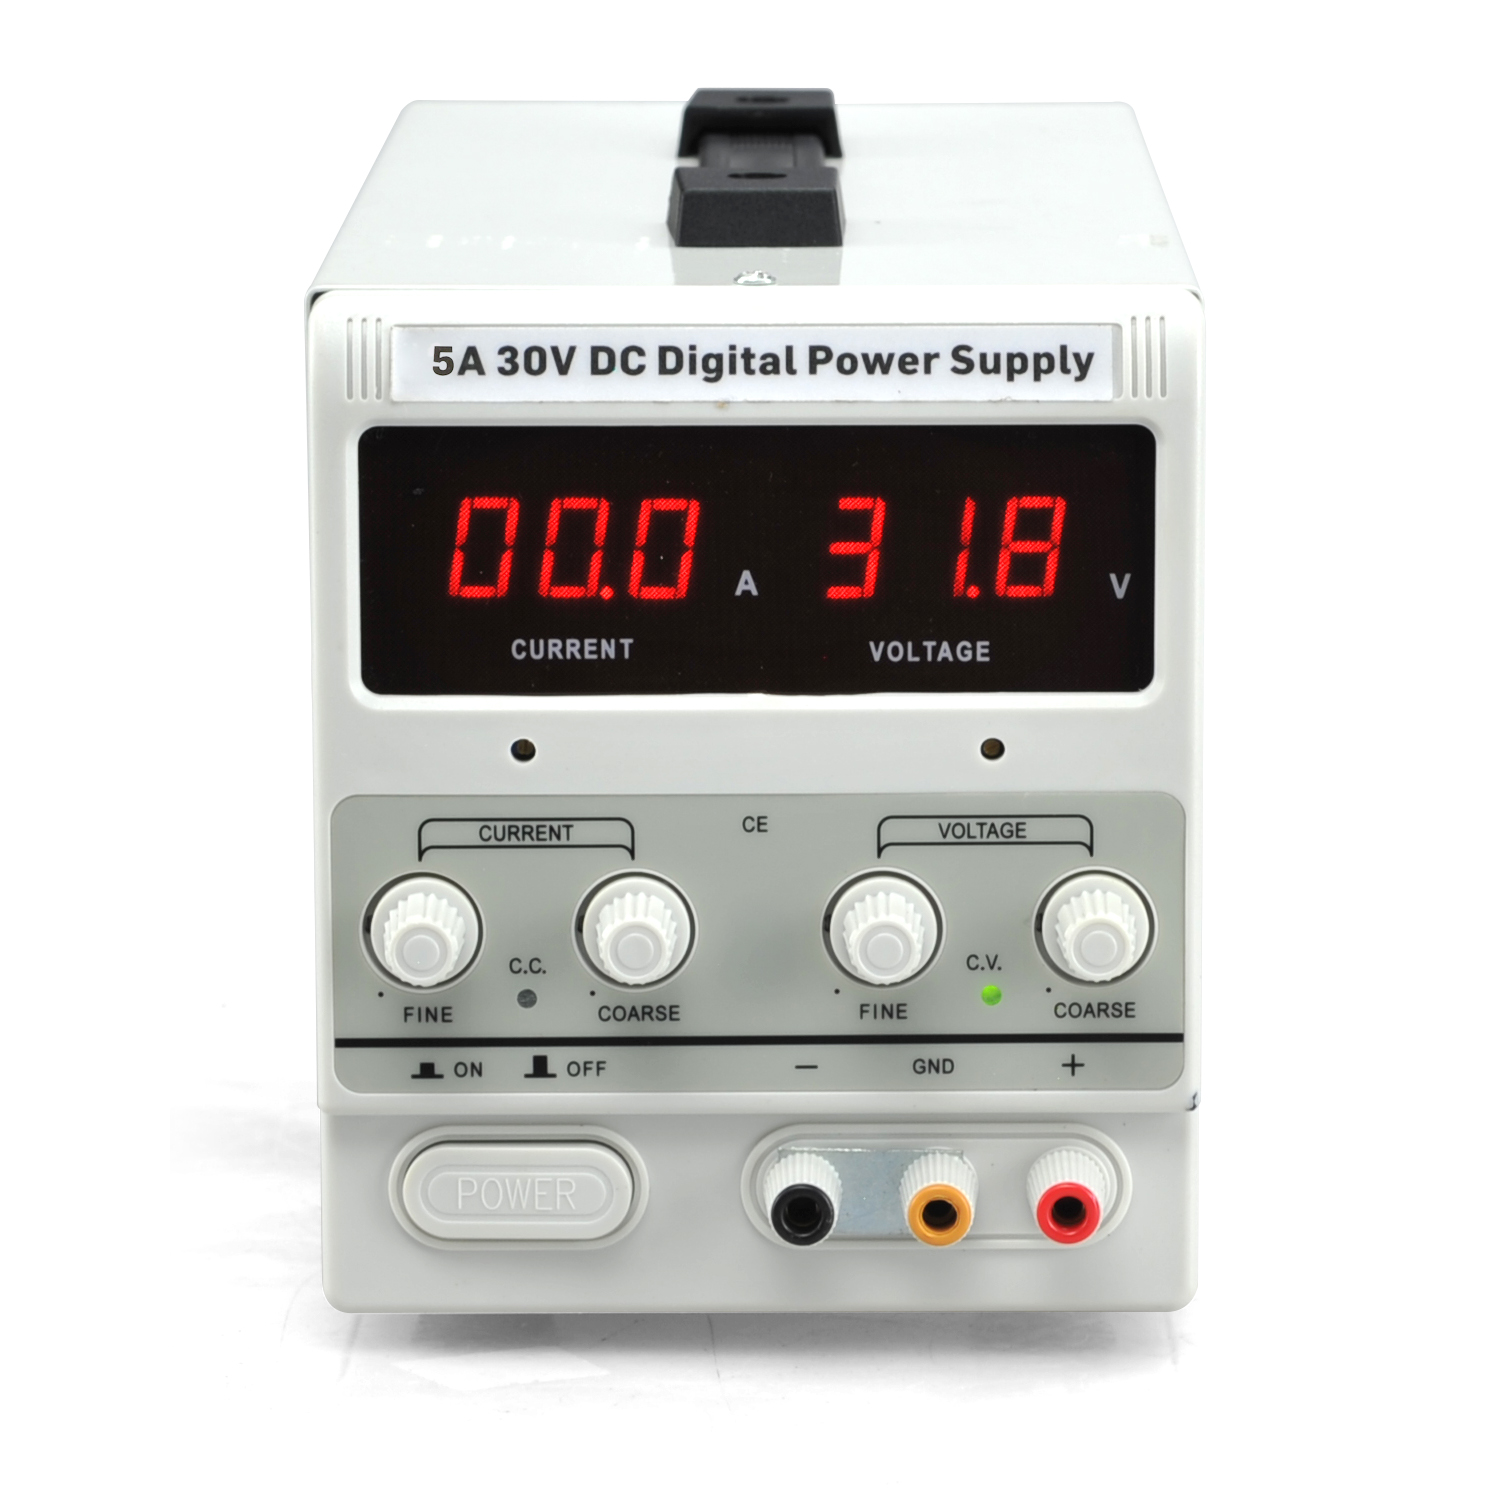 Dc power supply report